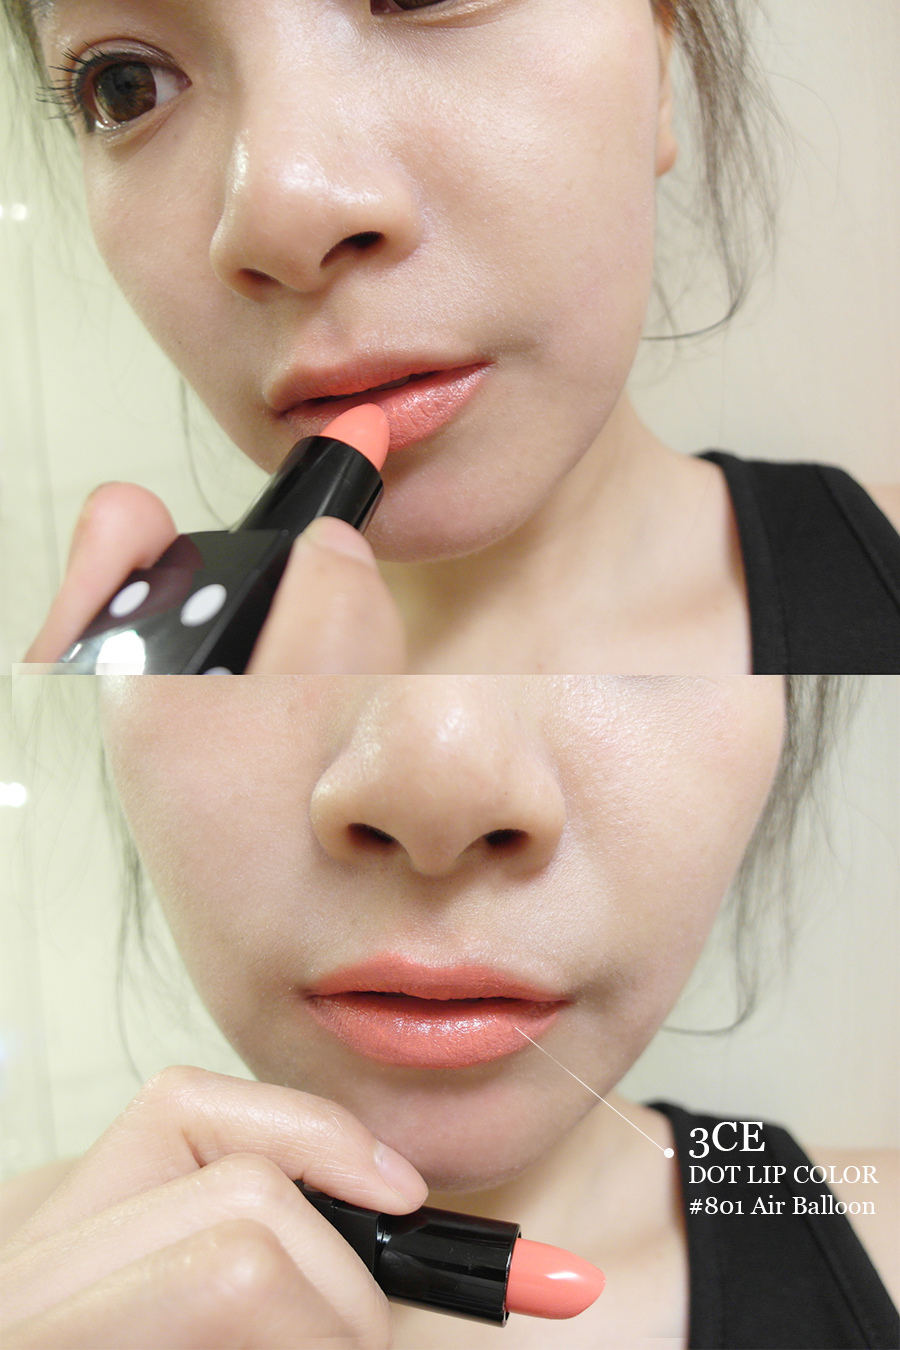 Make up - orange - lipstick - 23 - 3ce - dot lip color - air balloon